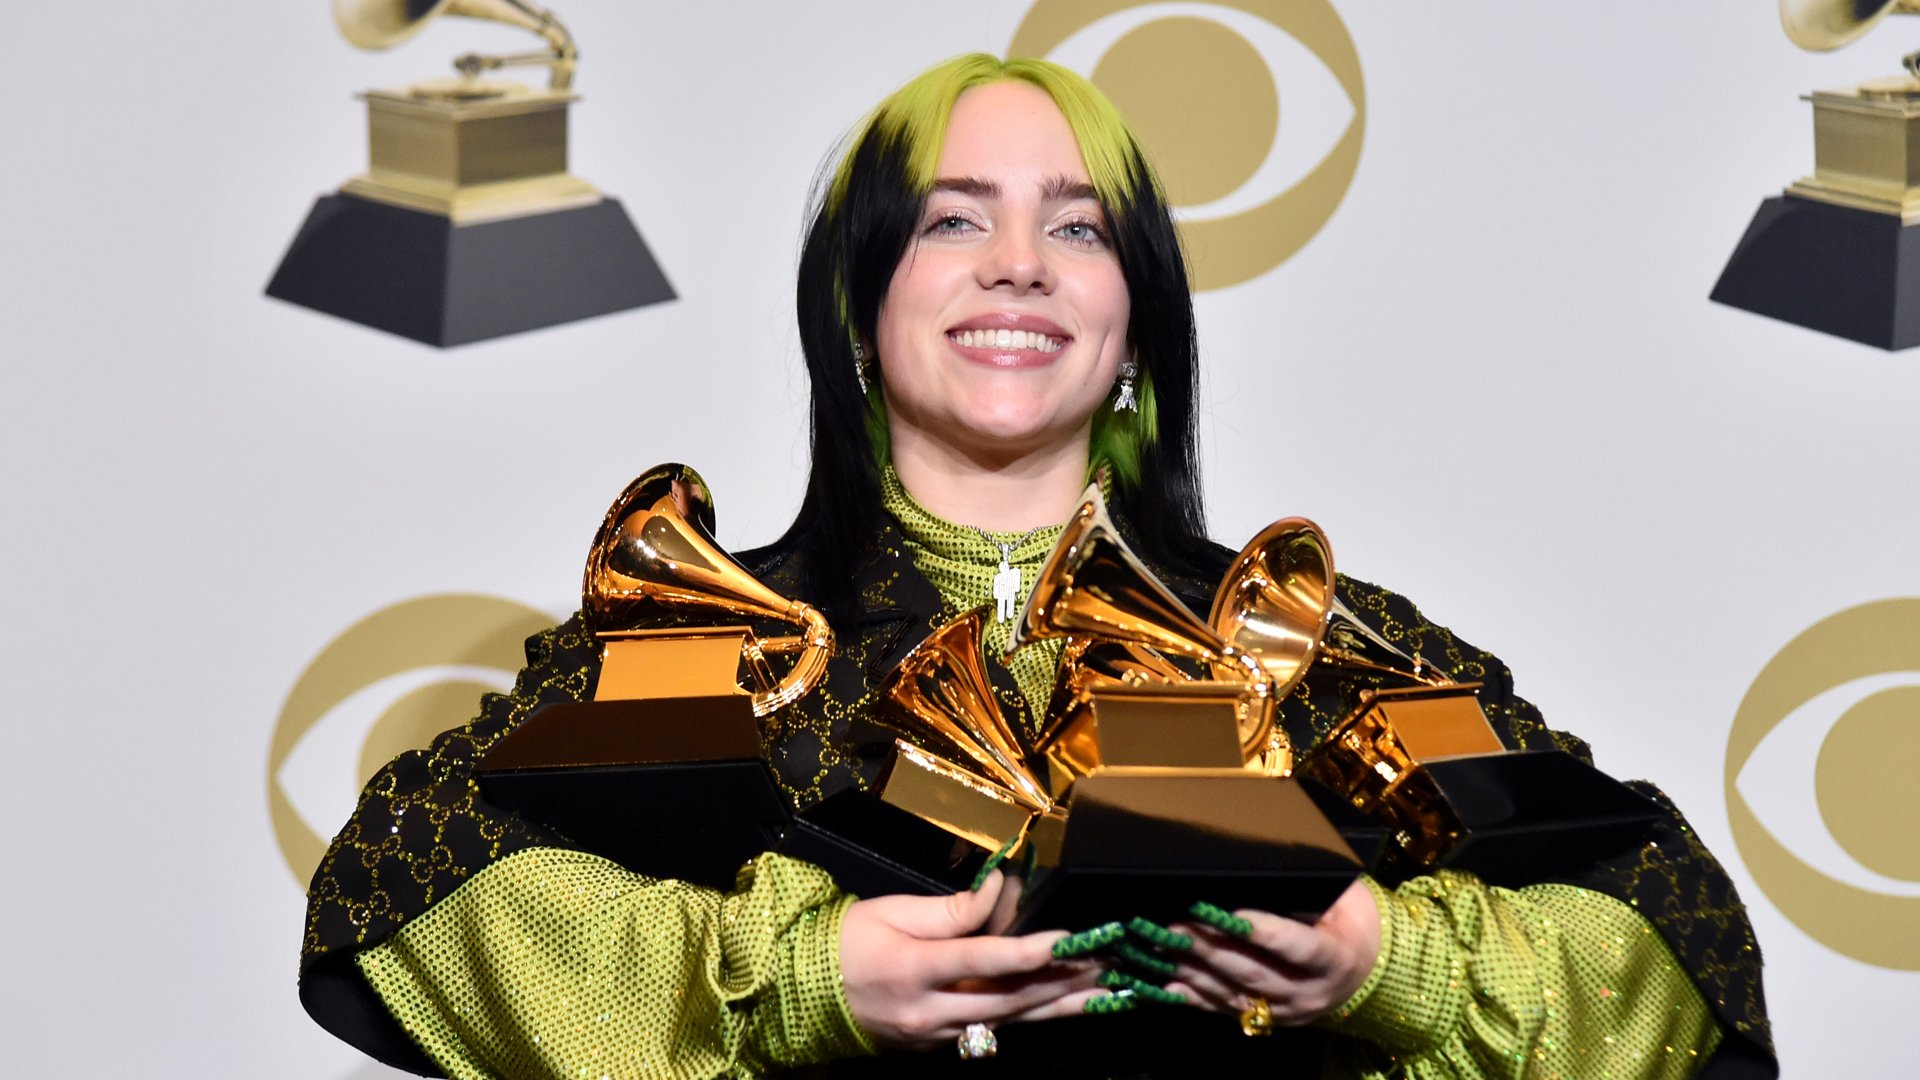 "Billie Eilish, winner of Record of the Year for ""Bad Guy"", Album of the Year for ""when we all fall asleep, where do we go?"", Song of the Year for ""Bad Guy"", Best New Artist and Best Pop Vocal Album for ""when we all fall asleep, where do we go?"", poses in the press room during the 62nd Annual GRAMMY Awards at STAPLES Center on January 26, 2020 in Los Angeles, California. (Credit: Alberto E. Rodriguez/Getty Images/The Recording Academy)"